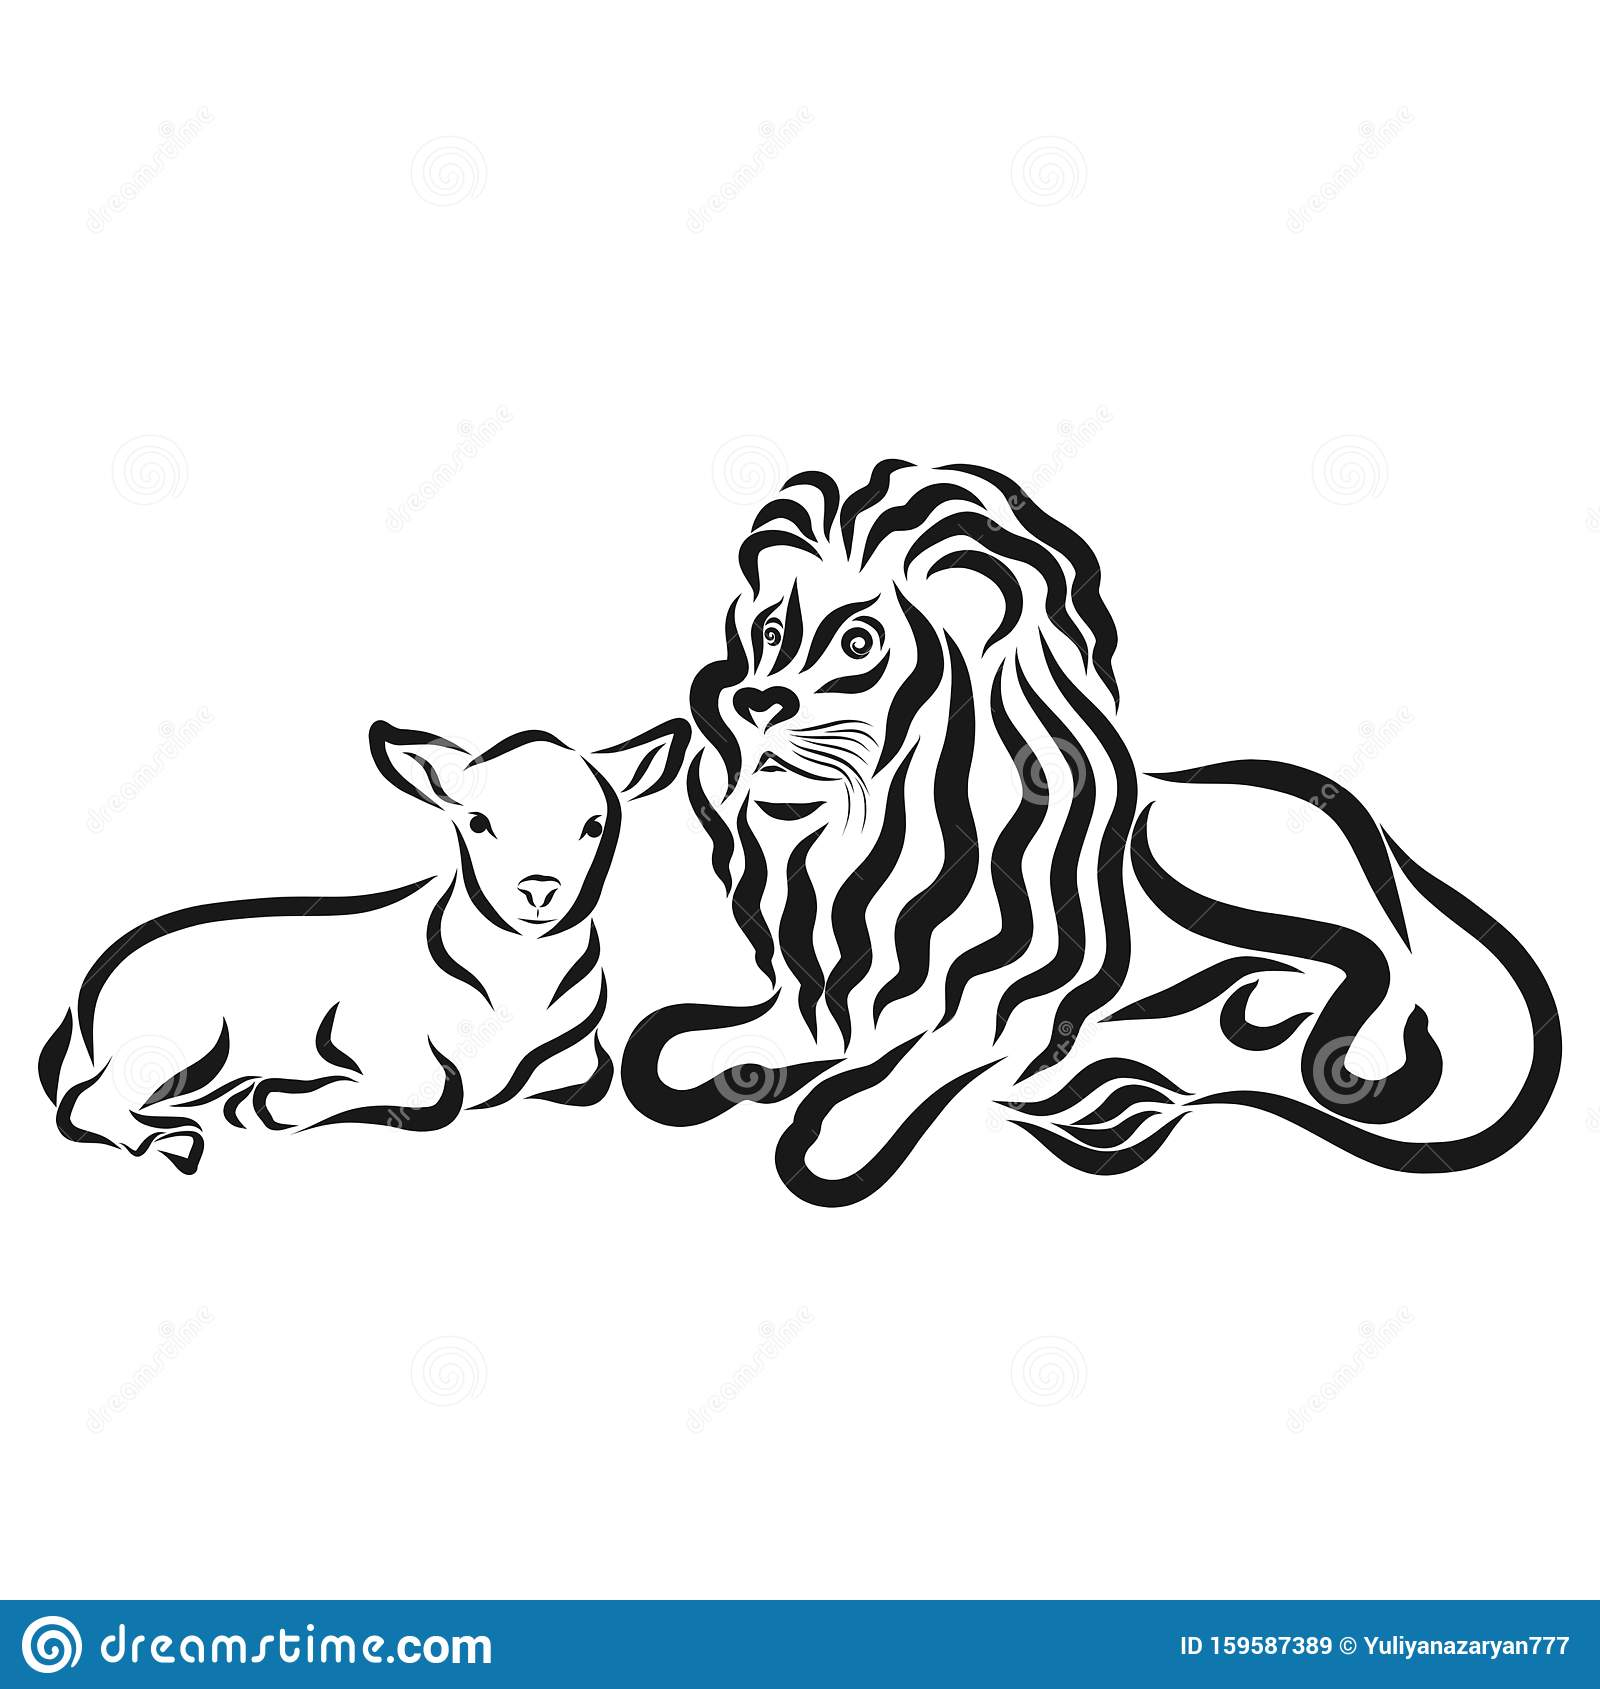 Lion Lamb Stock Illustrations 469 Lion Lamb Stock Illustrations Vectors Clipart Dreamstime I am assuming they are quoting the bible, but i can't find it. https www dreamstime com strong lion young lamb together black outline strong lion young lamb together black outline image159587389